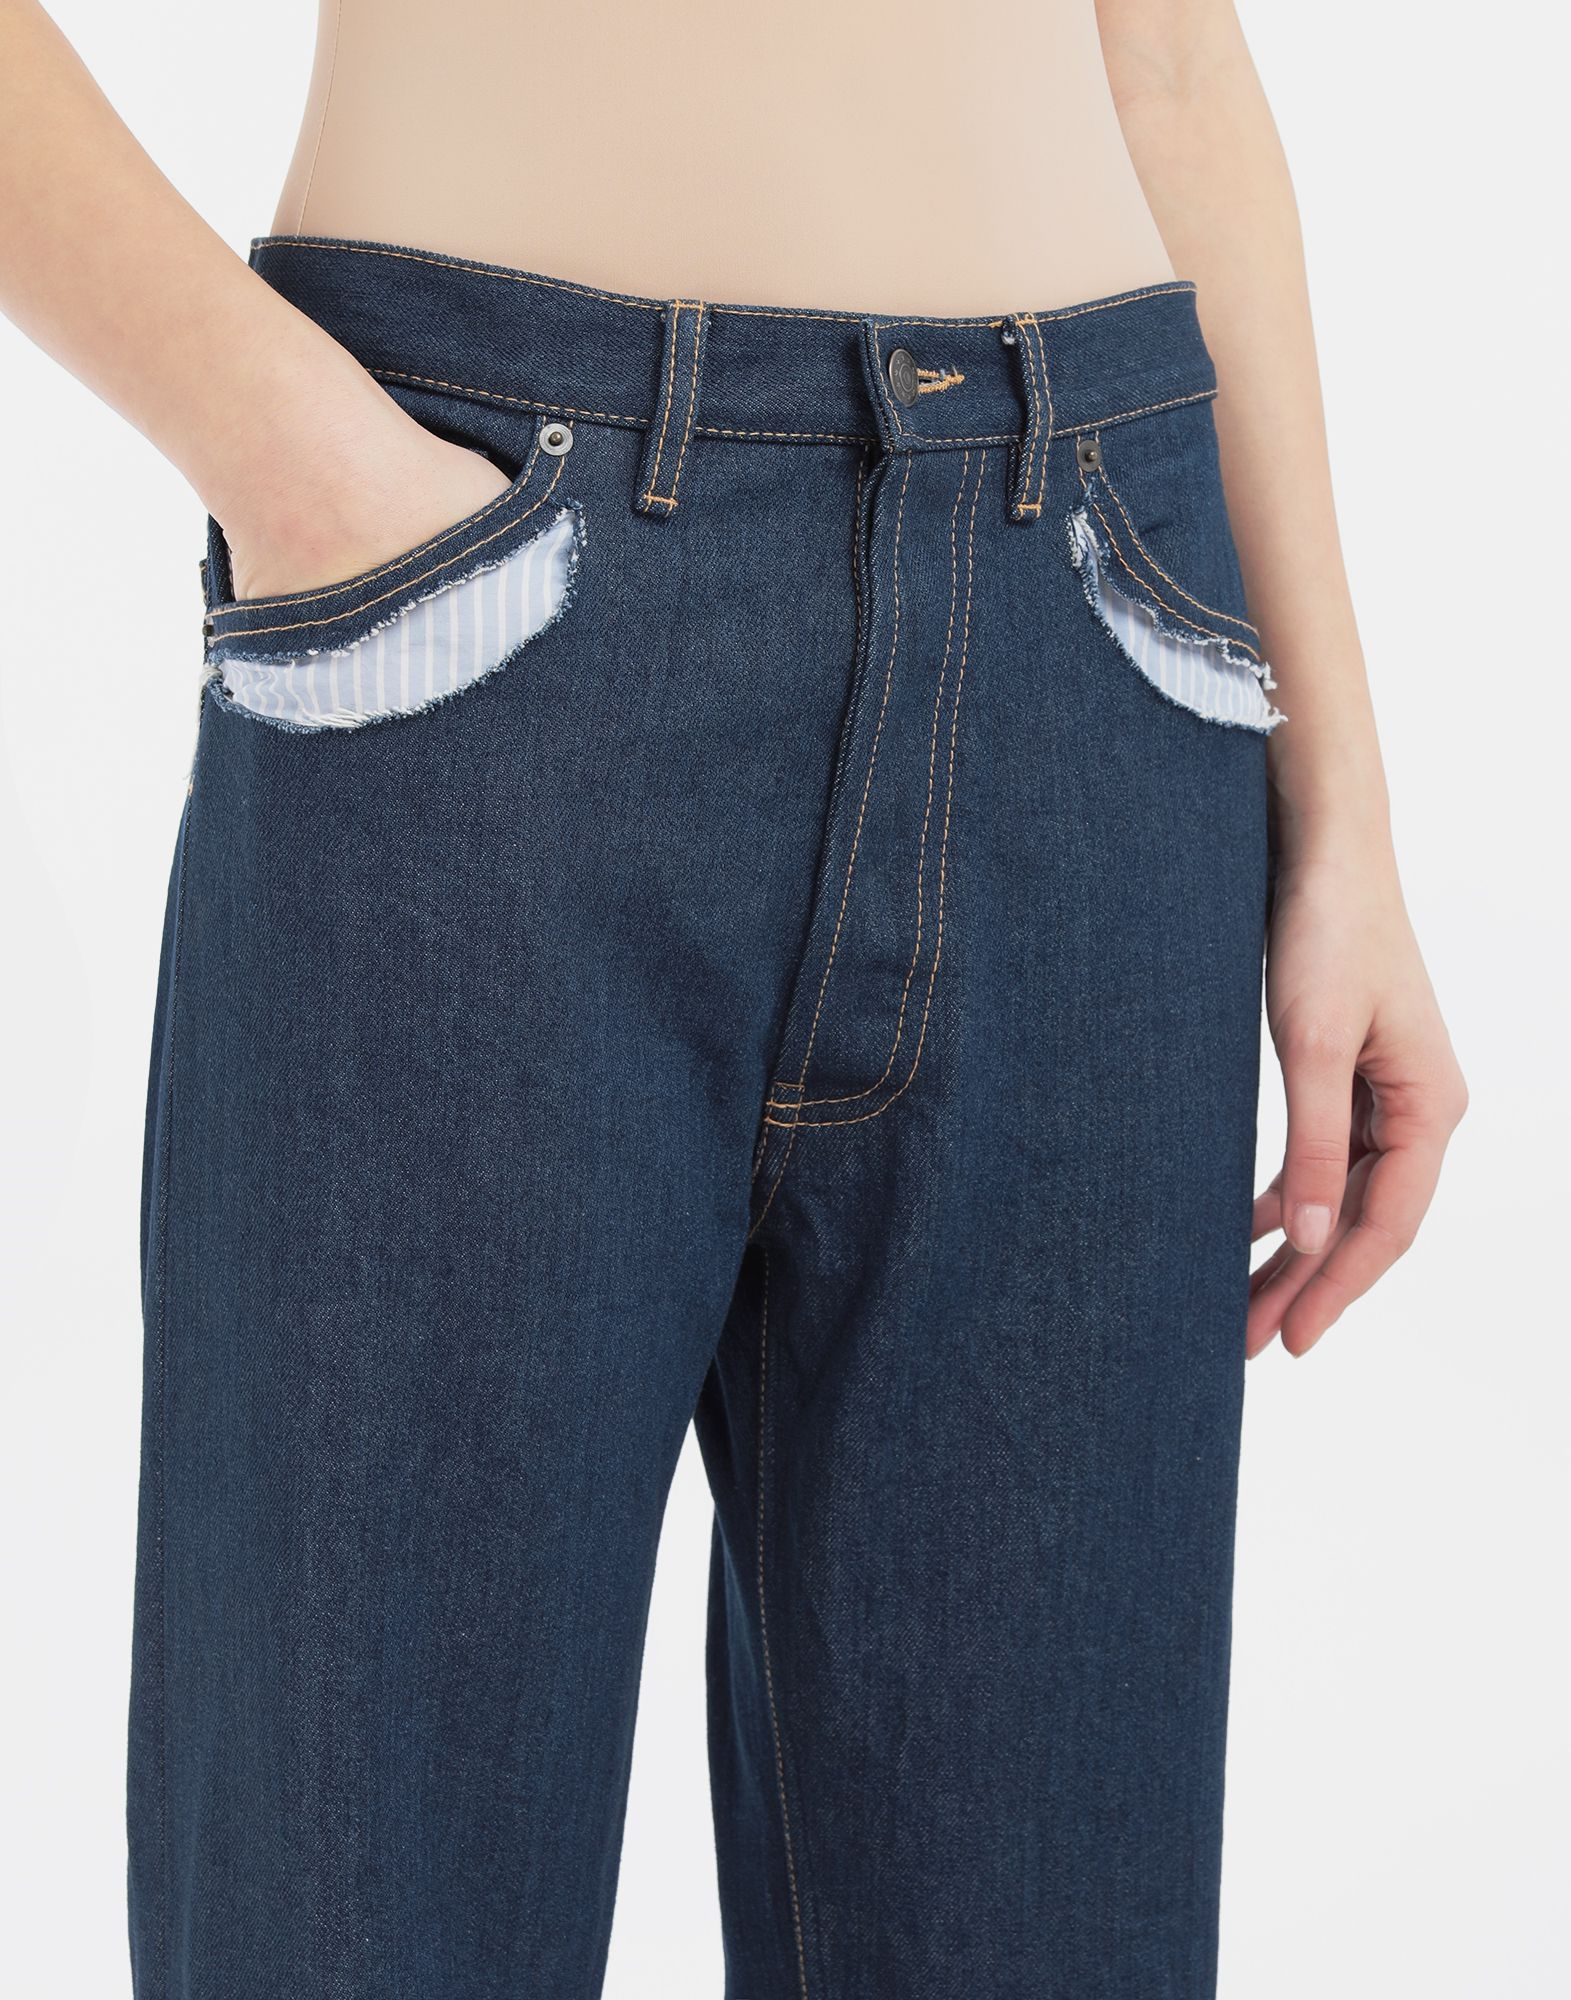 MAISON MARGIELA Décortiqué denim pants Jeans Woman a